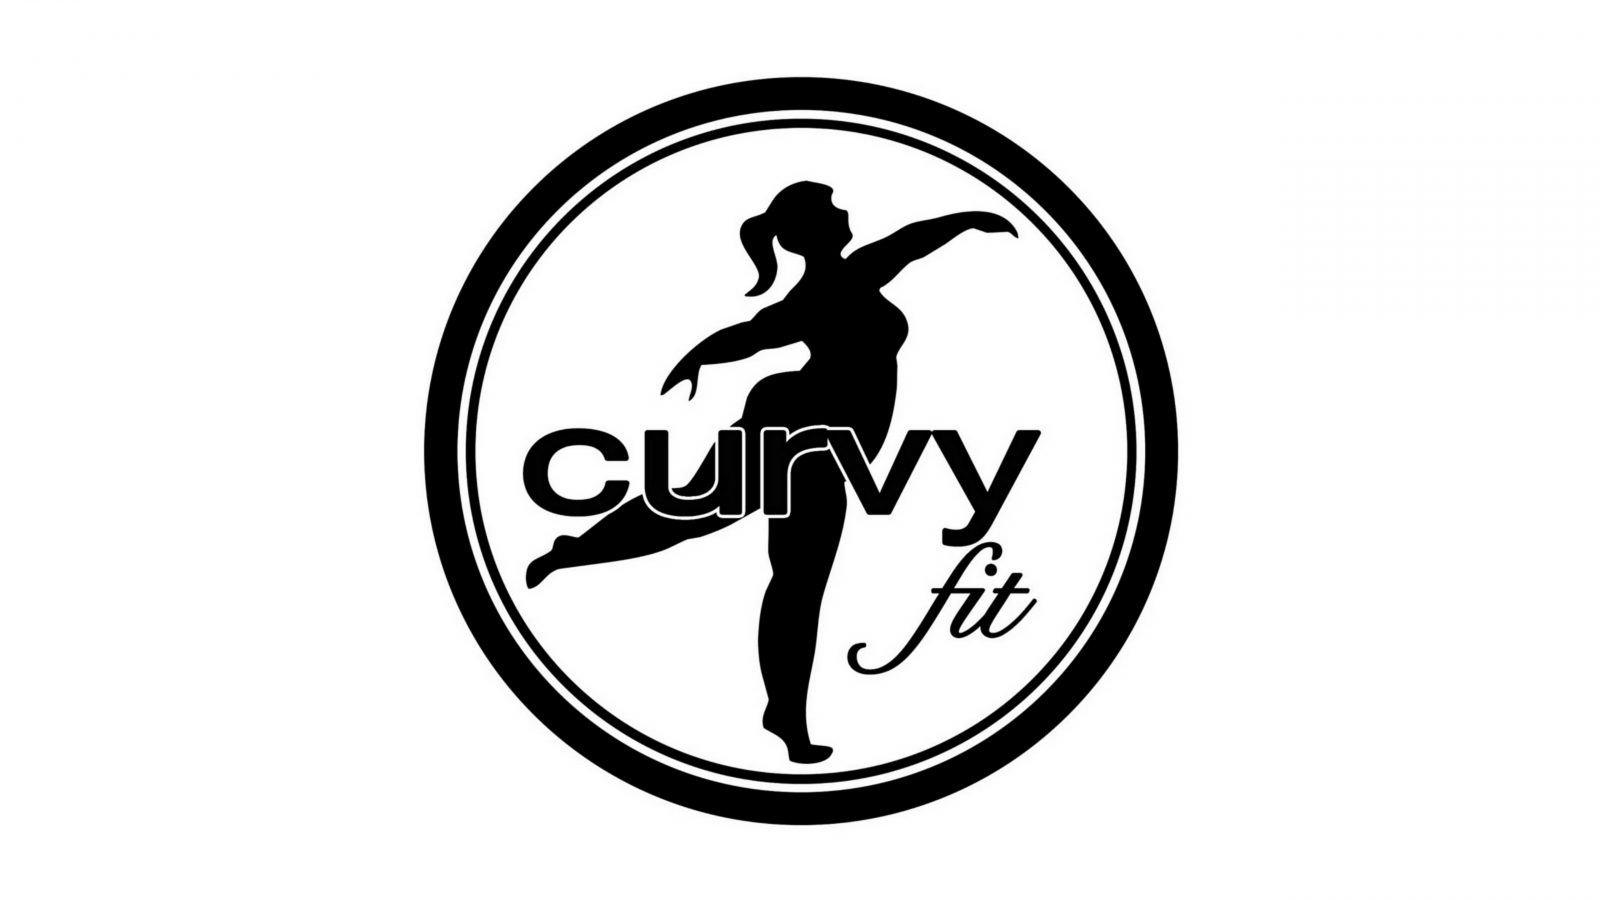 Curvyfit // Die Sommer Edition (Teaser Video)